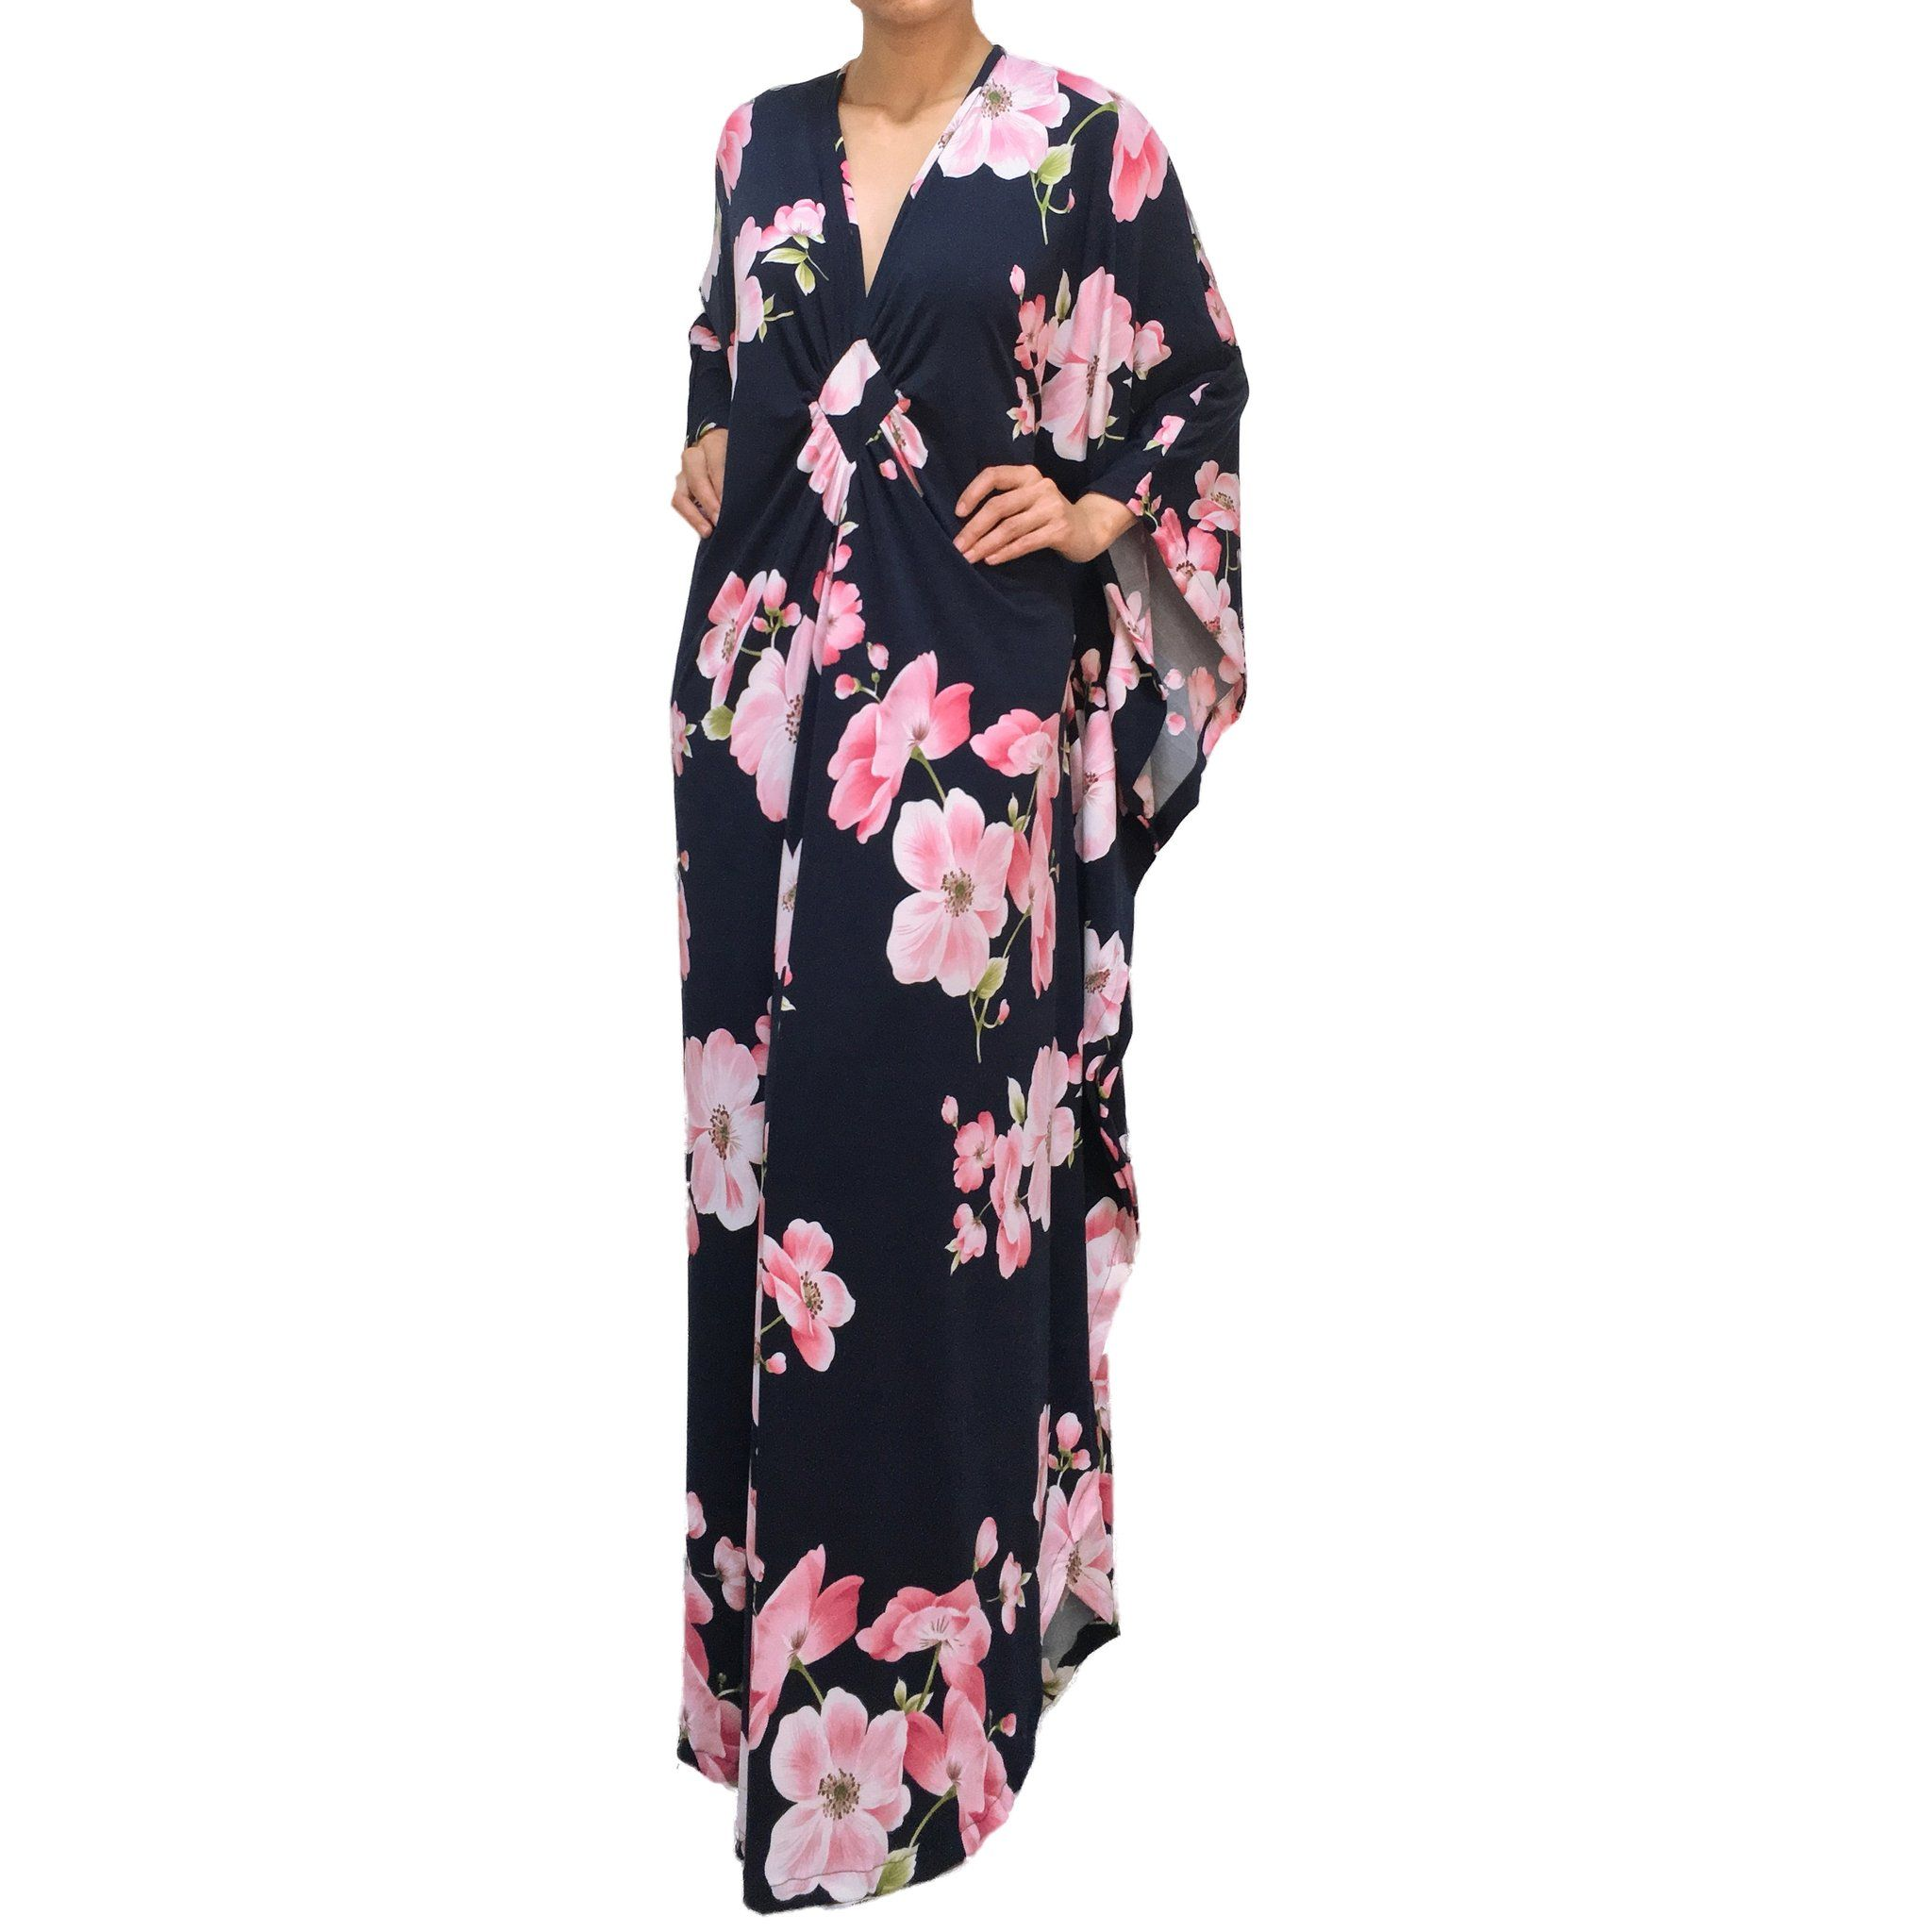 Kaftan maxi dress print navy blue with pink floral autumn winter